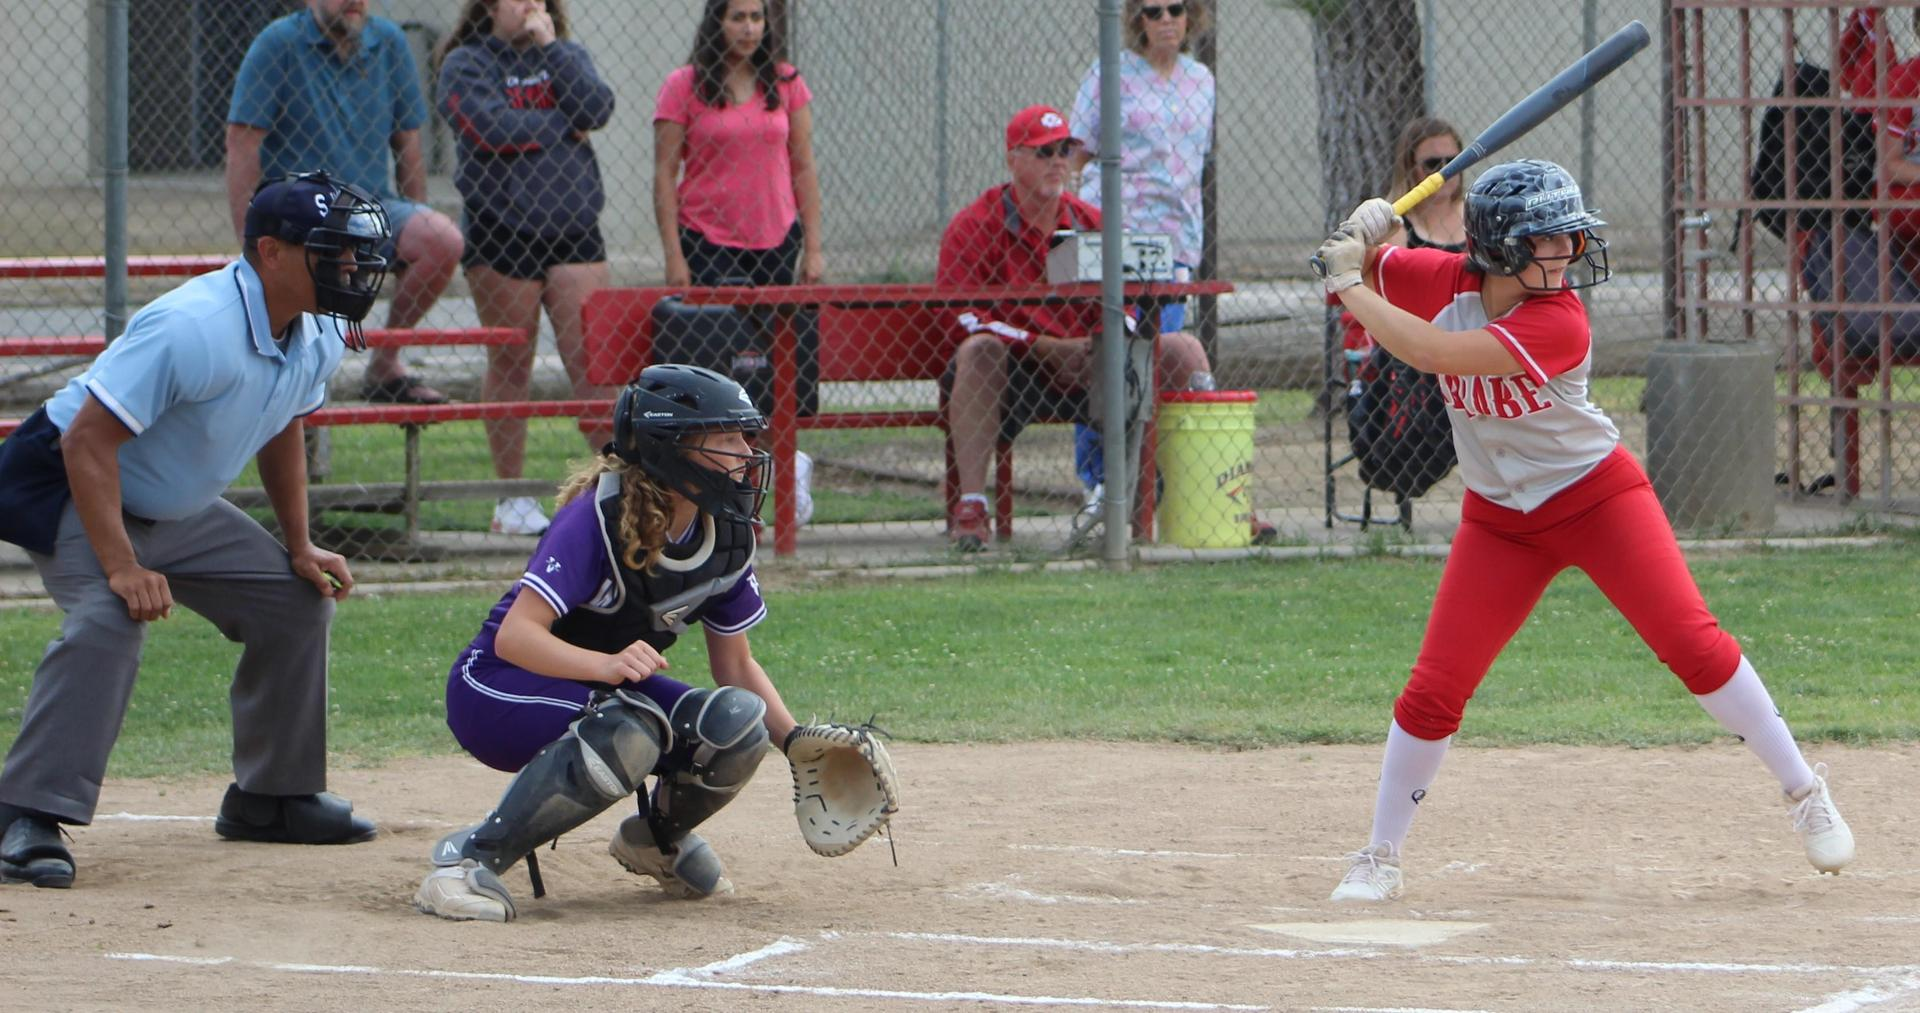 Softball players in action against Washington Union